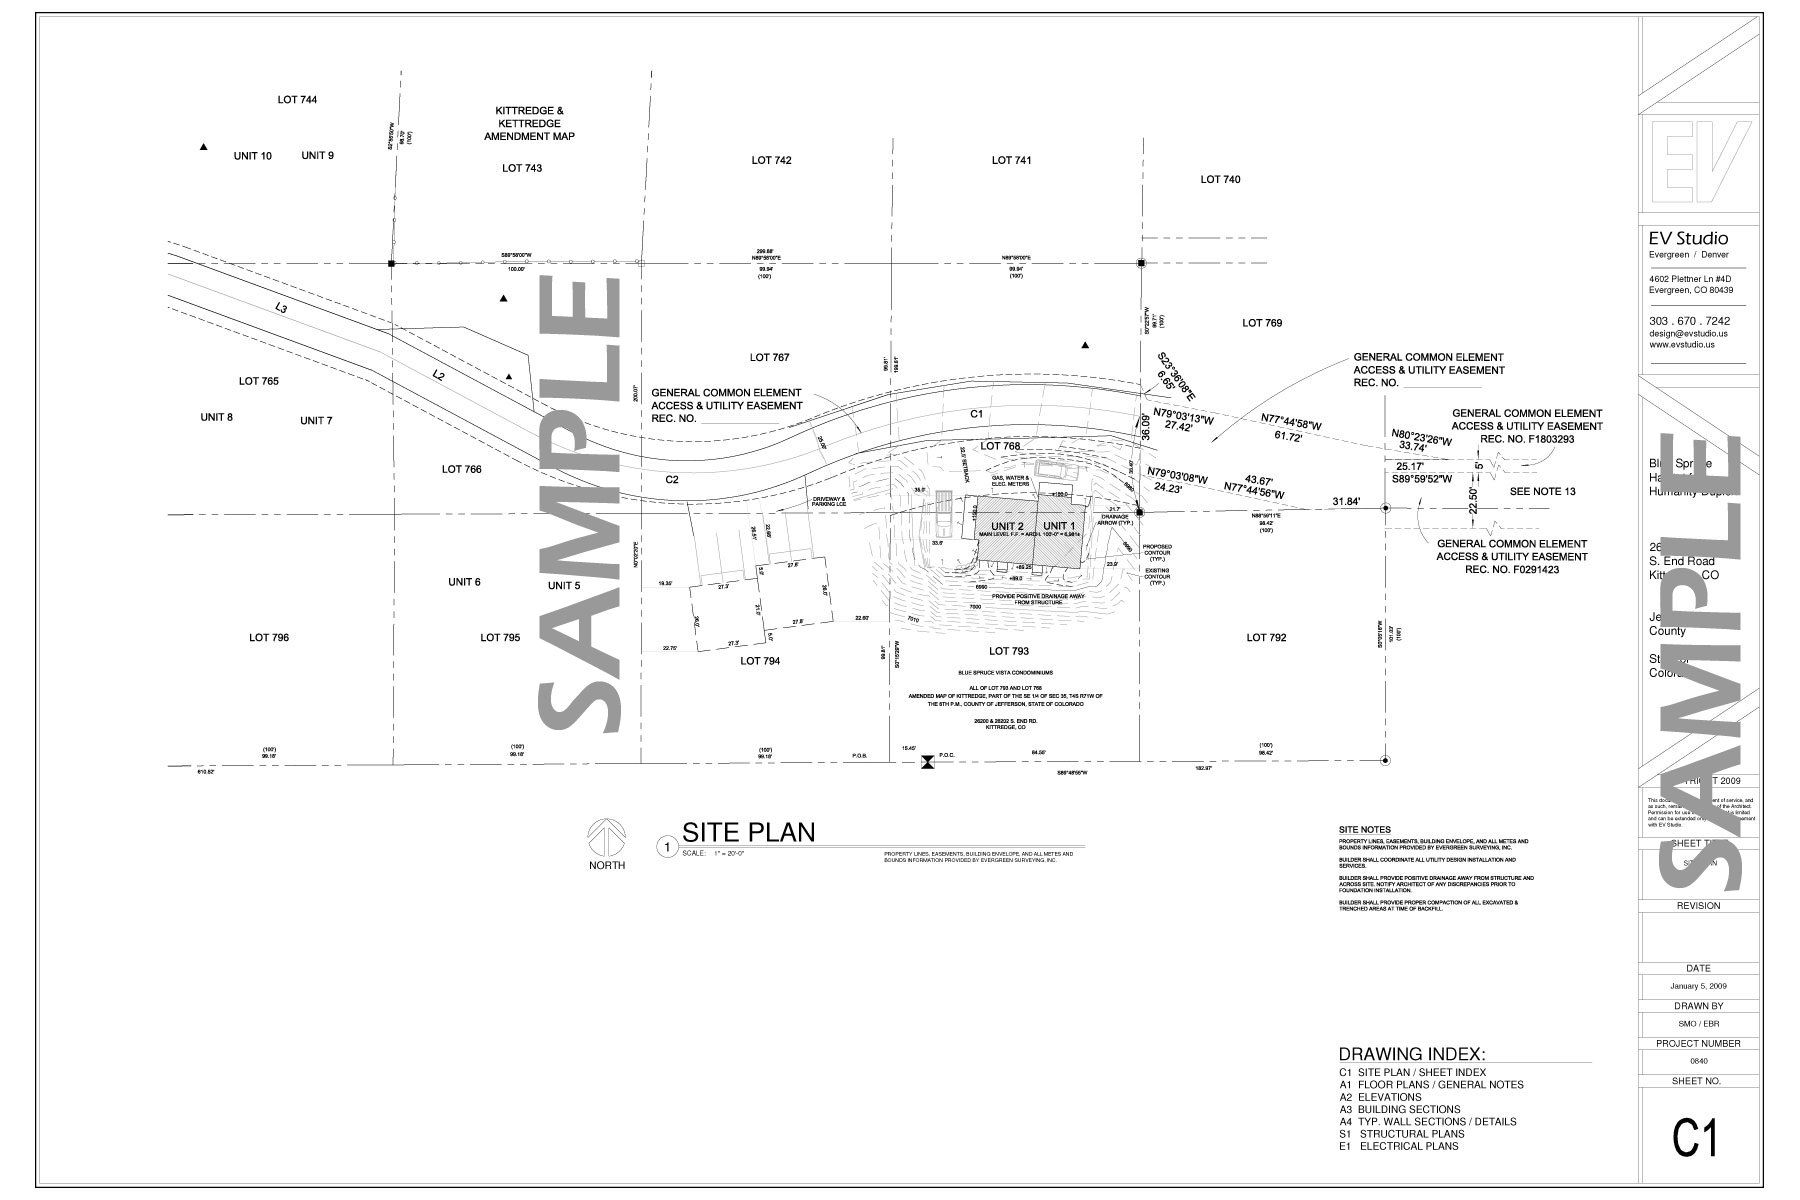 Blue spruce habitat for humanity duplex plans evstudio architect blue spruce habitat for humanity duplex plans evstudio architect engineer denver evergreen colorado austin texas architect malvernweather Gallery